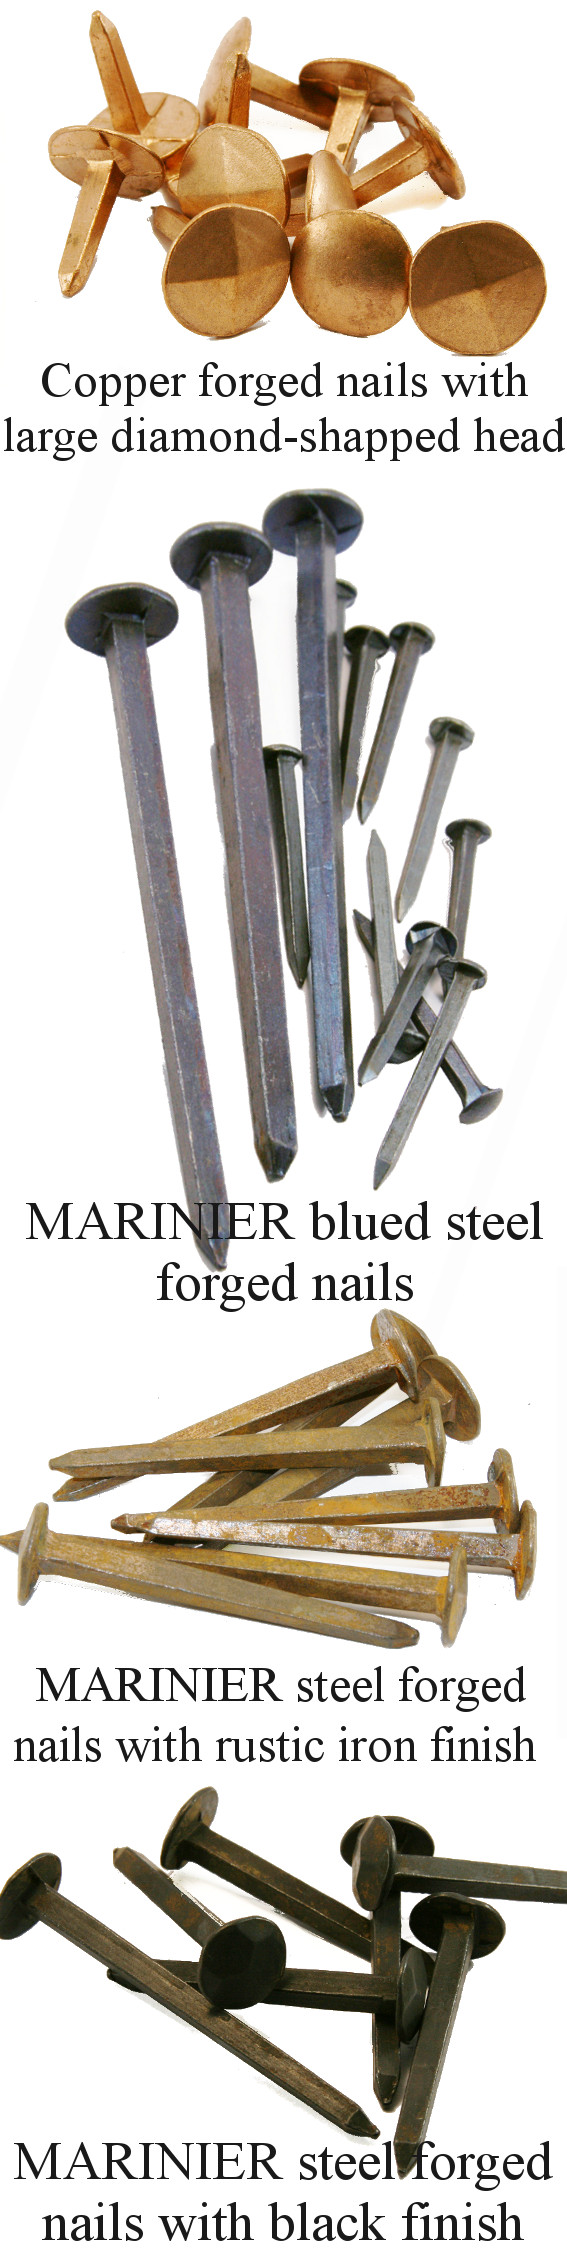 RIVIERRE forged nails for carpentry and framework